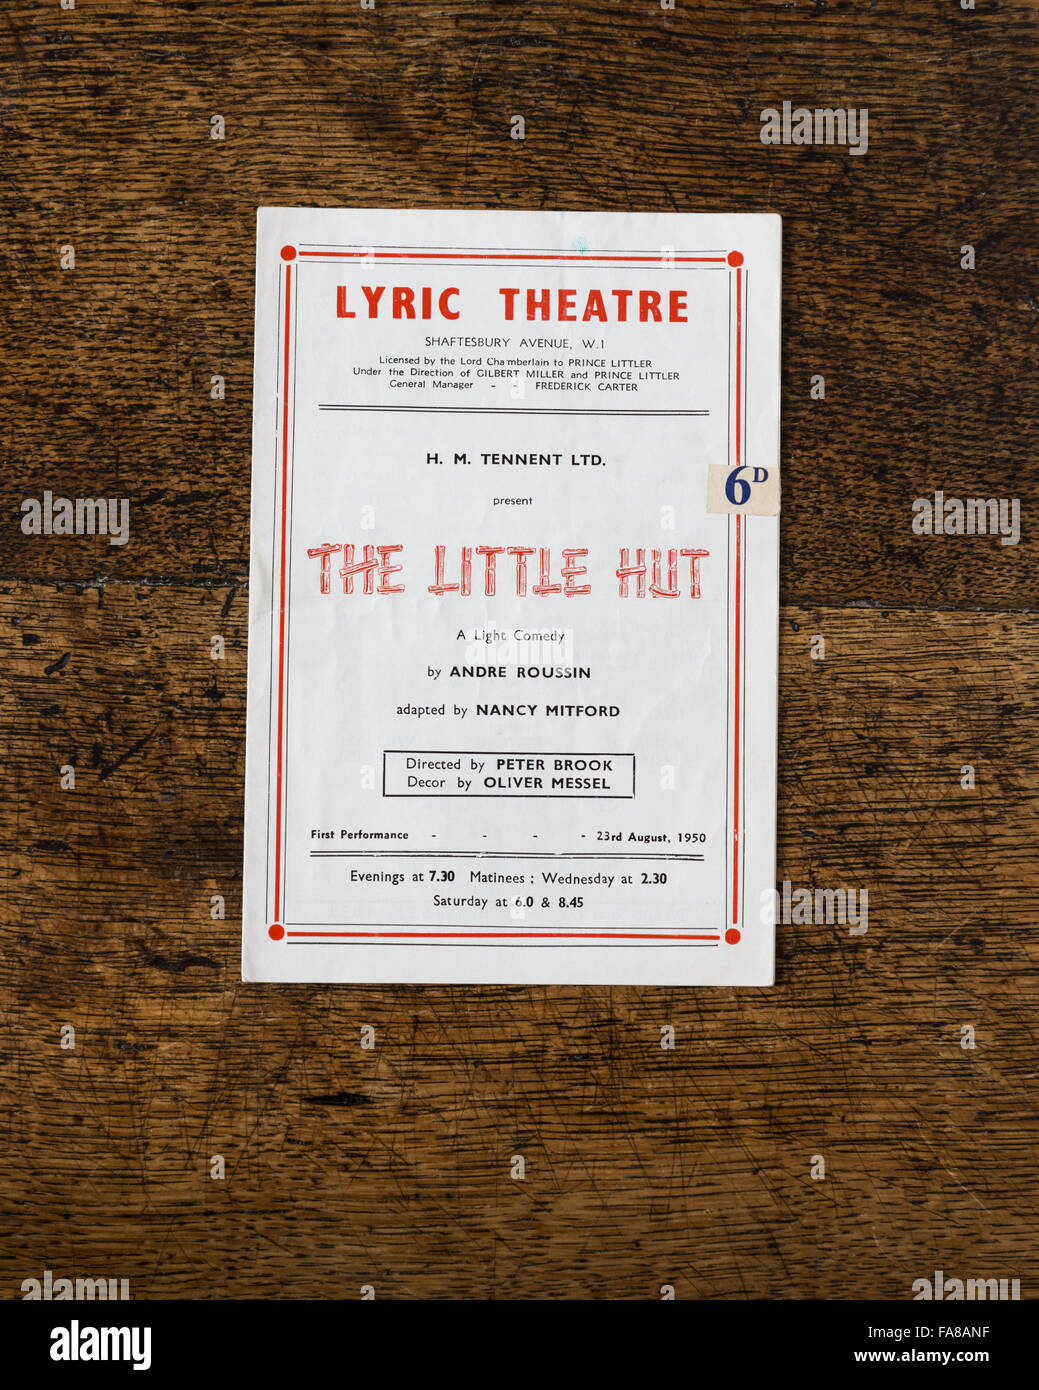 Theatre programme for the 1953 production of Andre Roussin's play 'The Little Hut' (adapted by Nancy - Stock Image